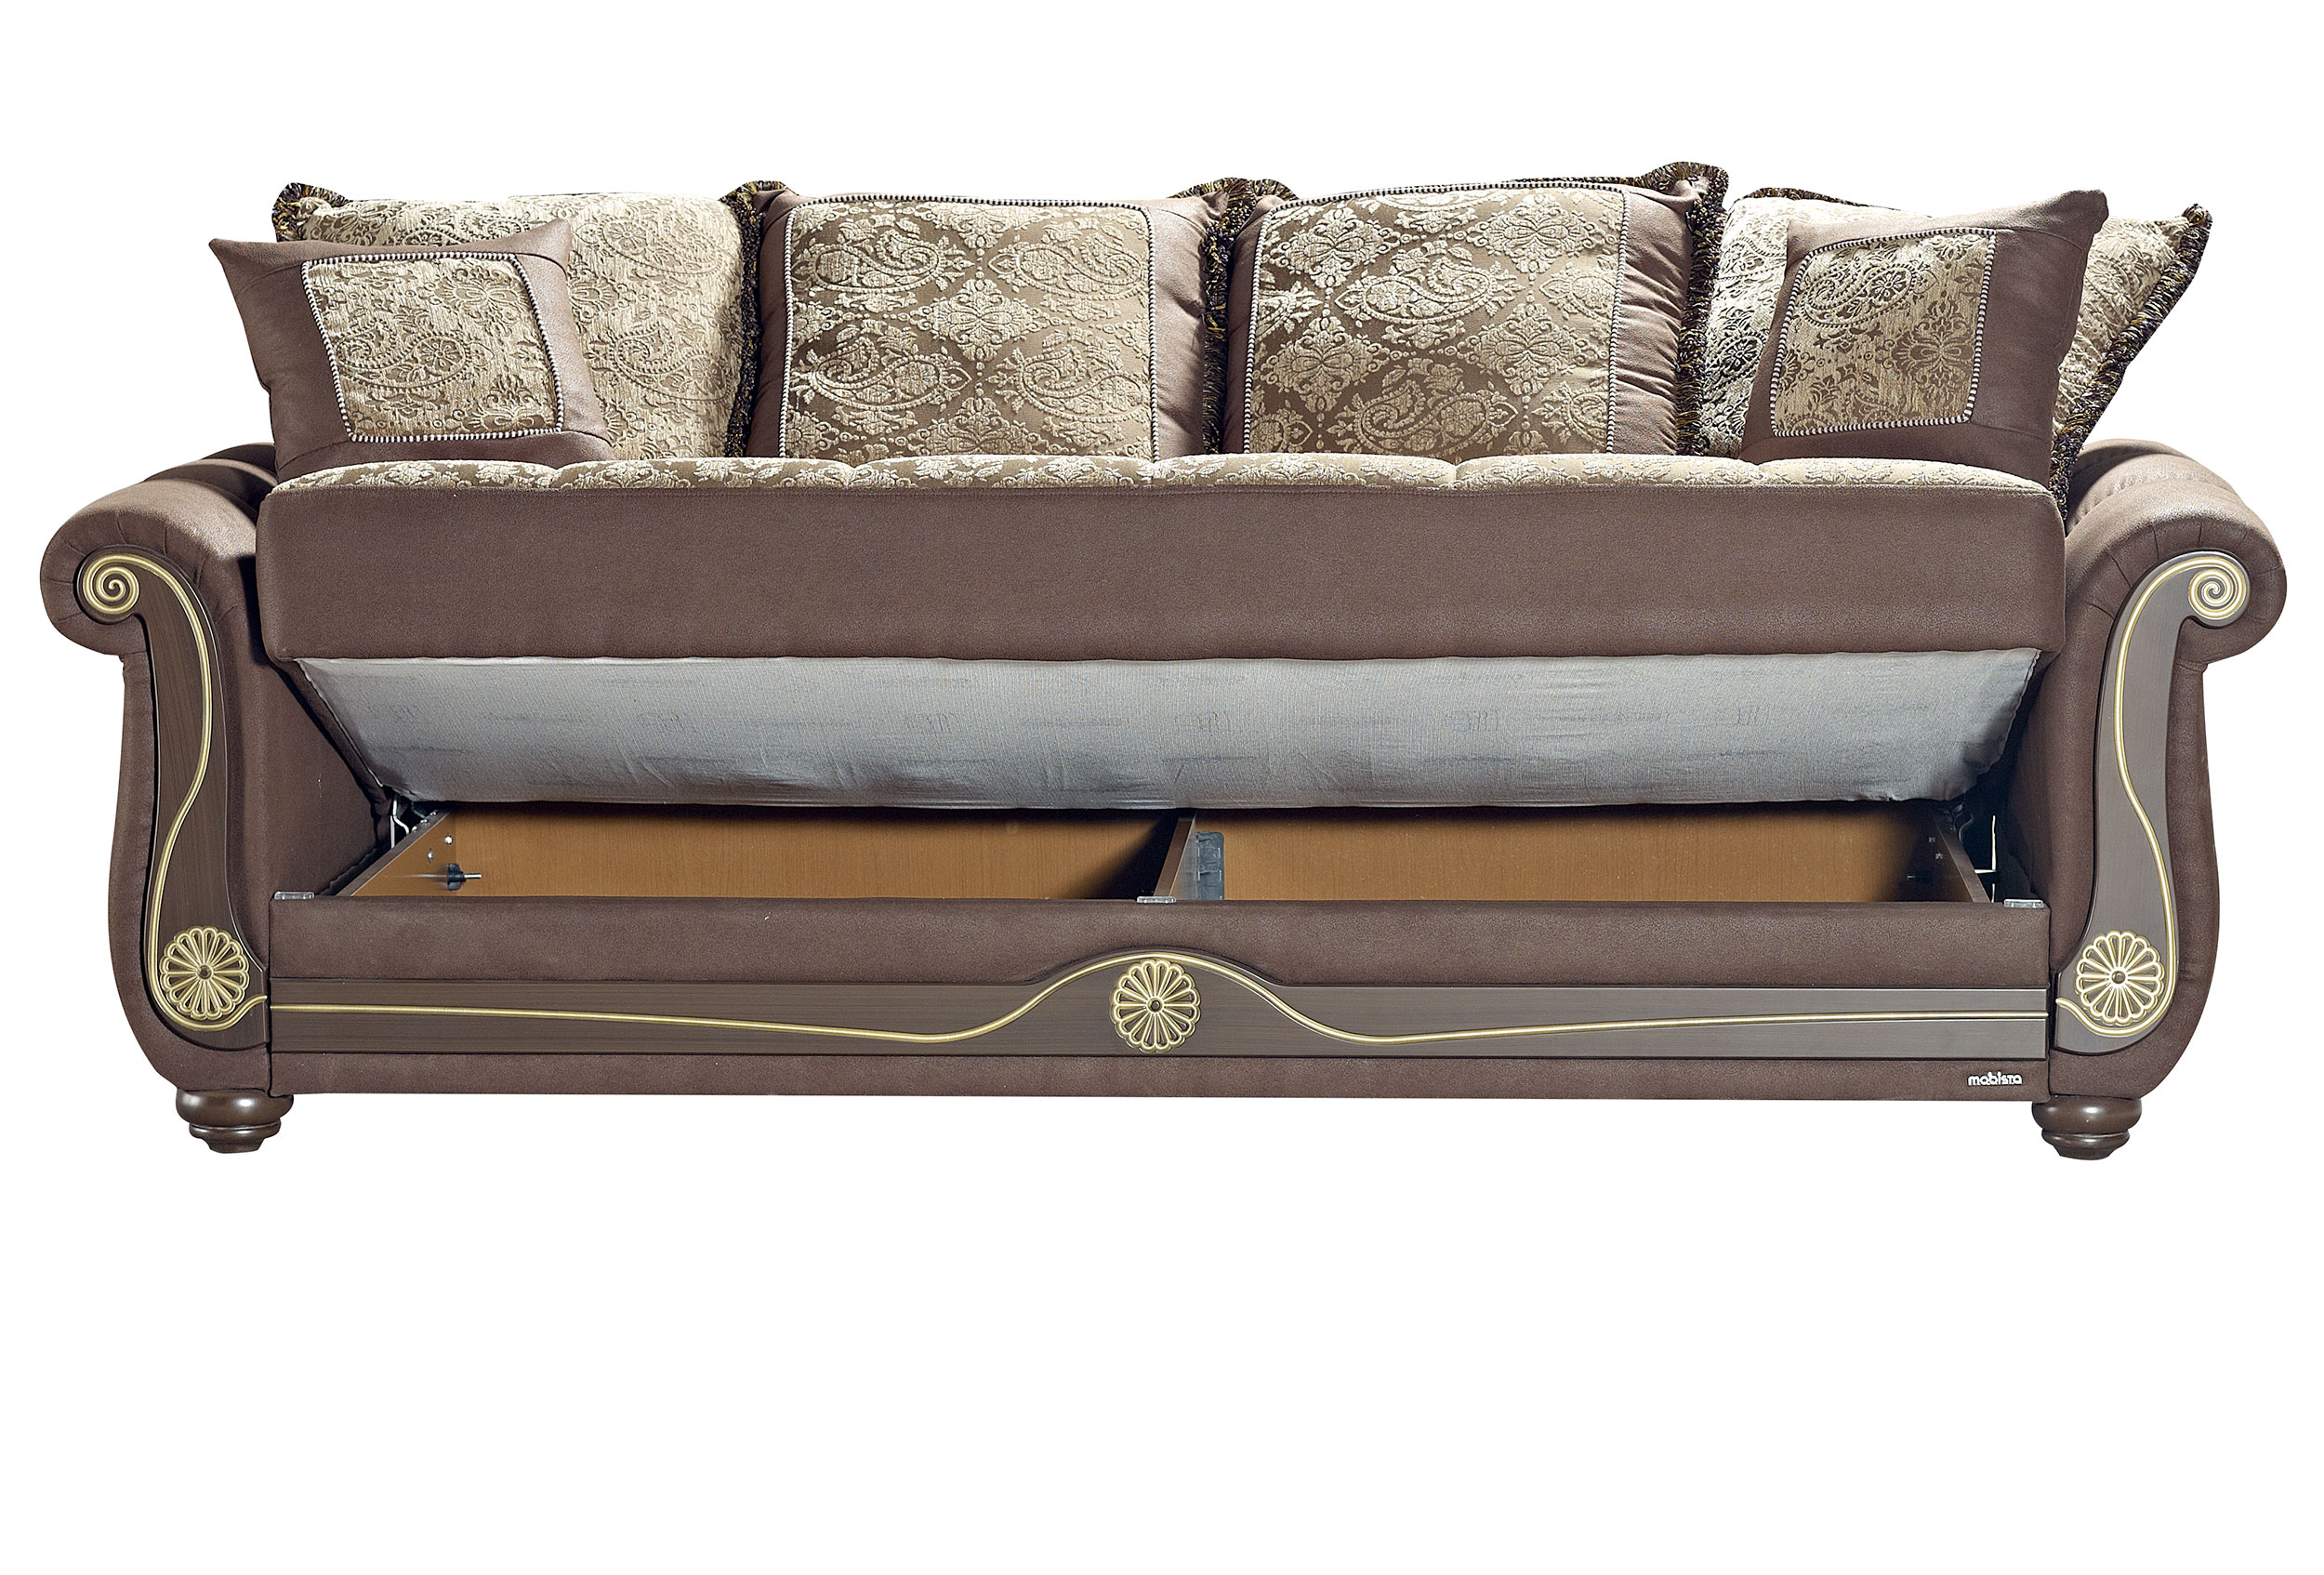 American Style Crown Brown Sofa Bed By Mobista